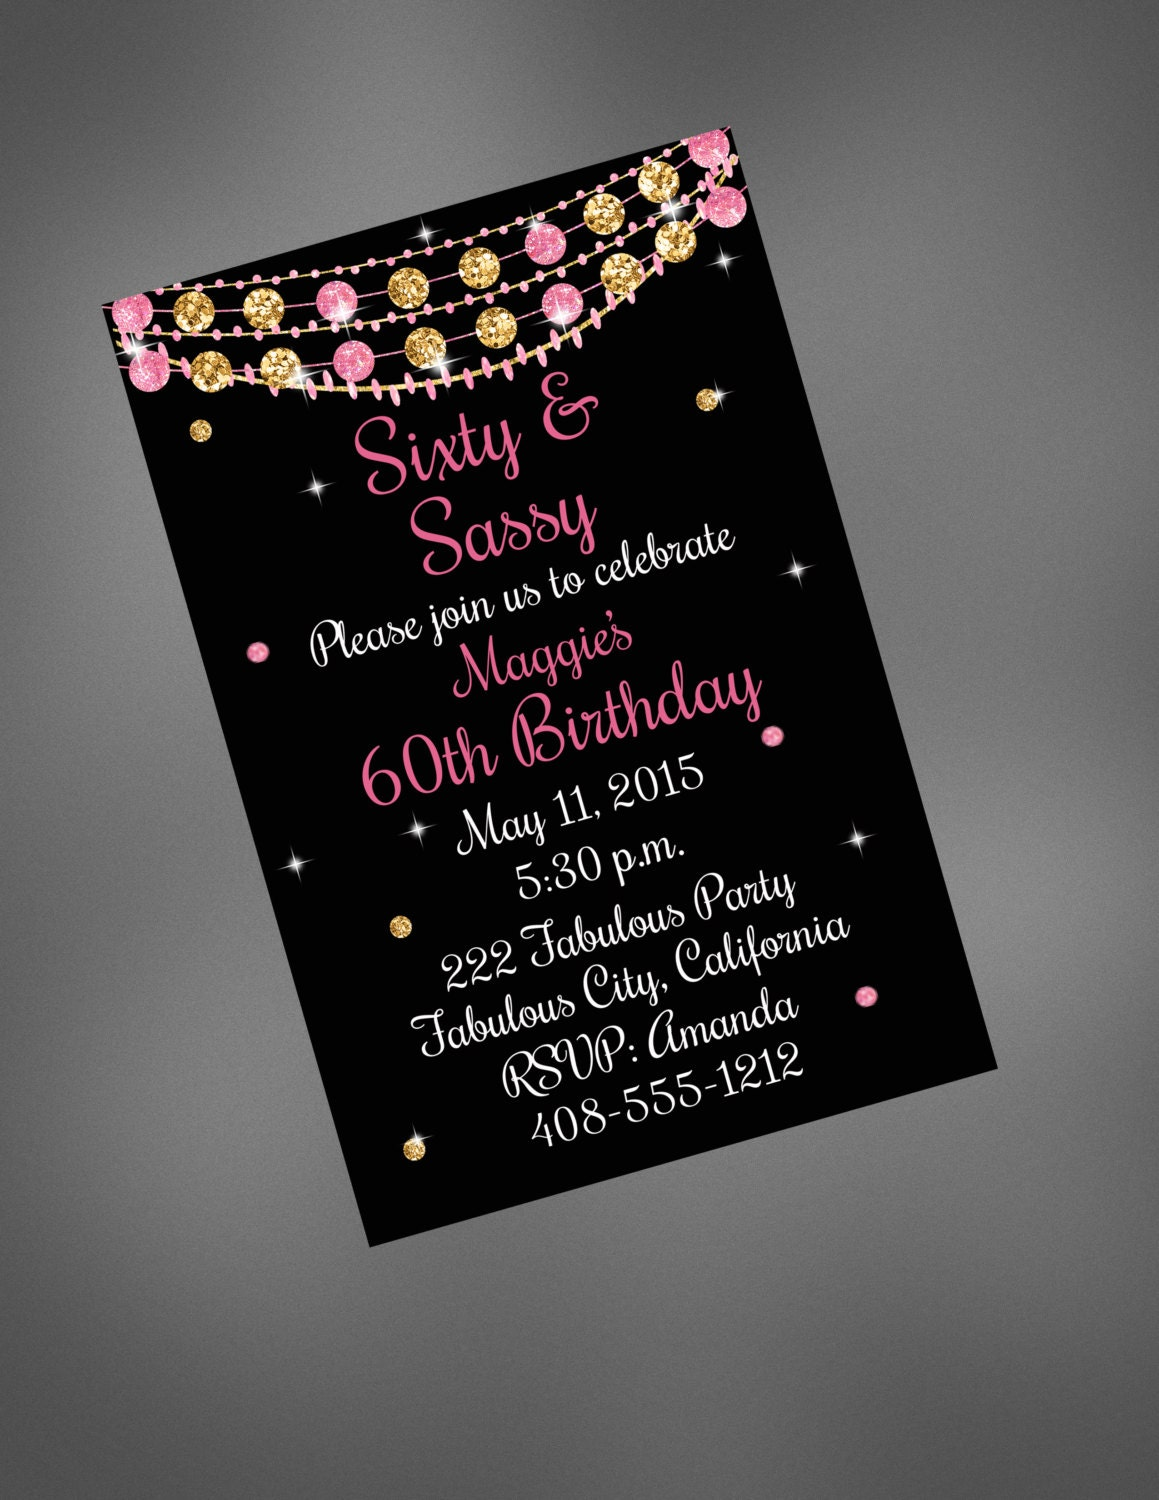 60th Birthday Invitation Sixty & Sassy Invitation Pink and